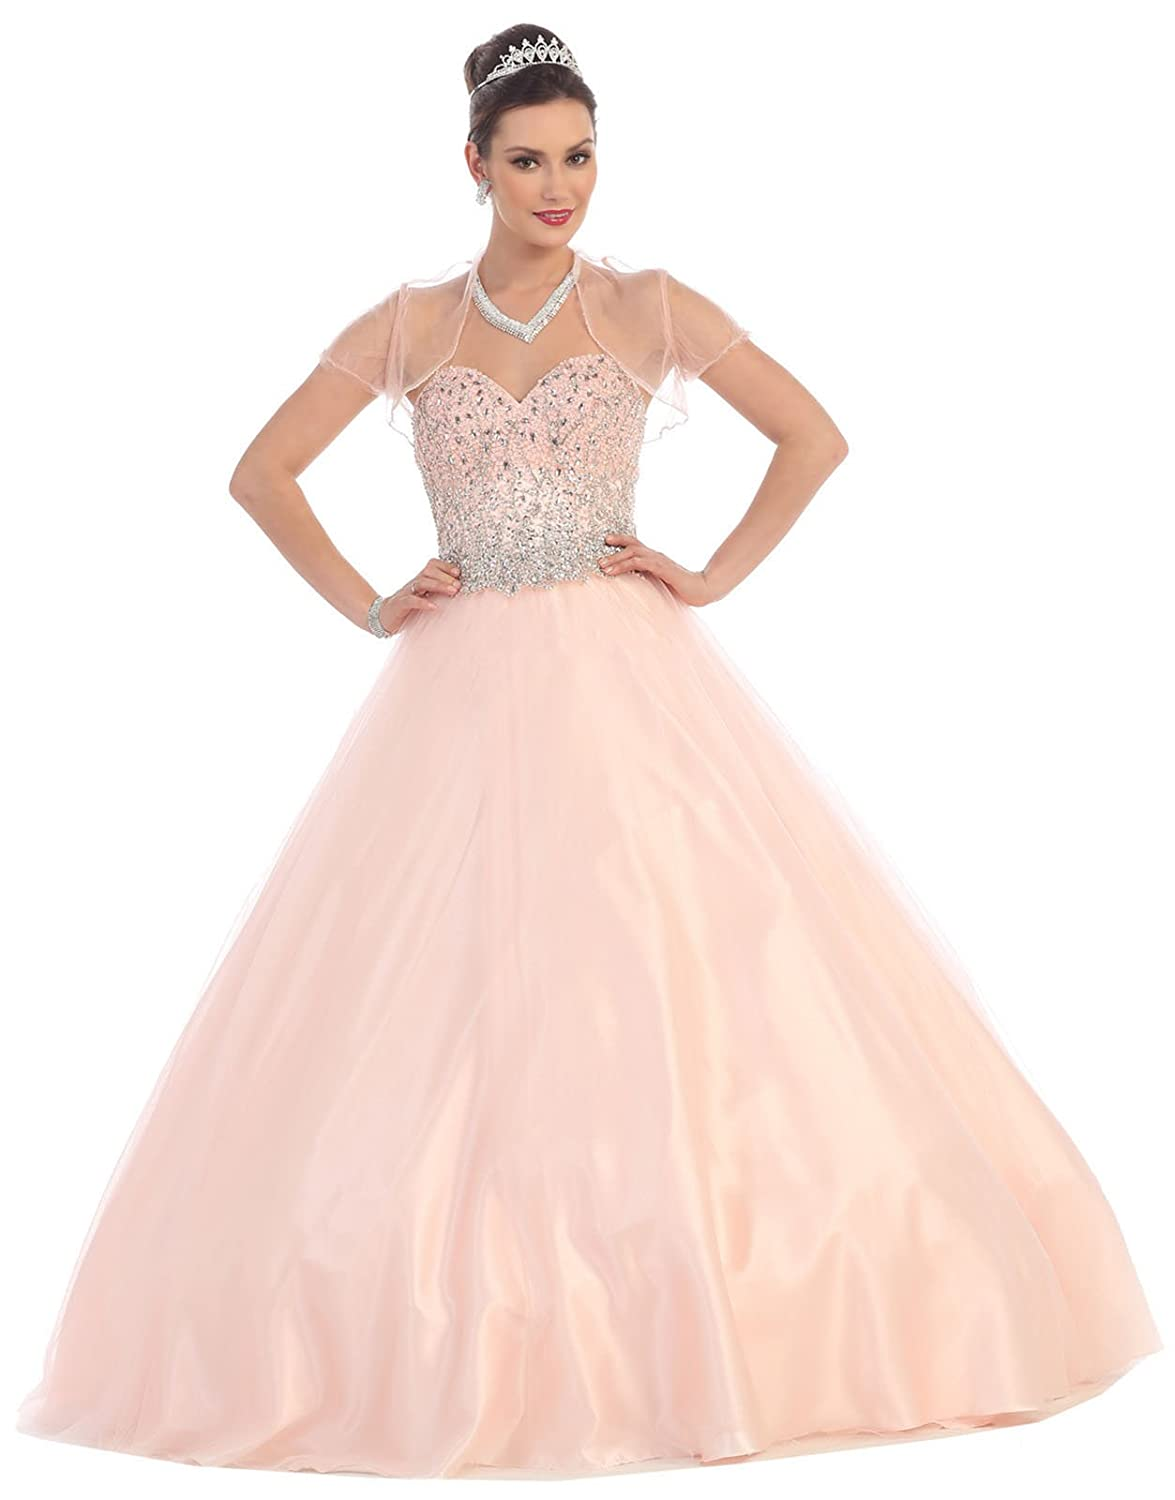 Amazon.com: Layla K LK65 Prom Queen Formal Quinceanera Ball Gown: Clothing